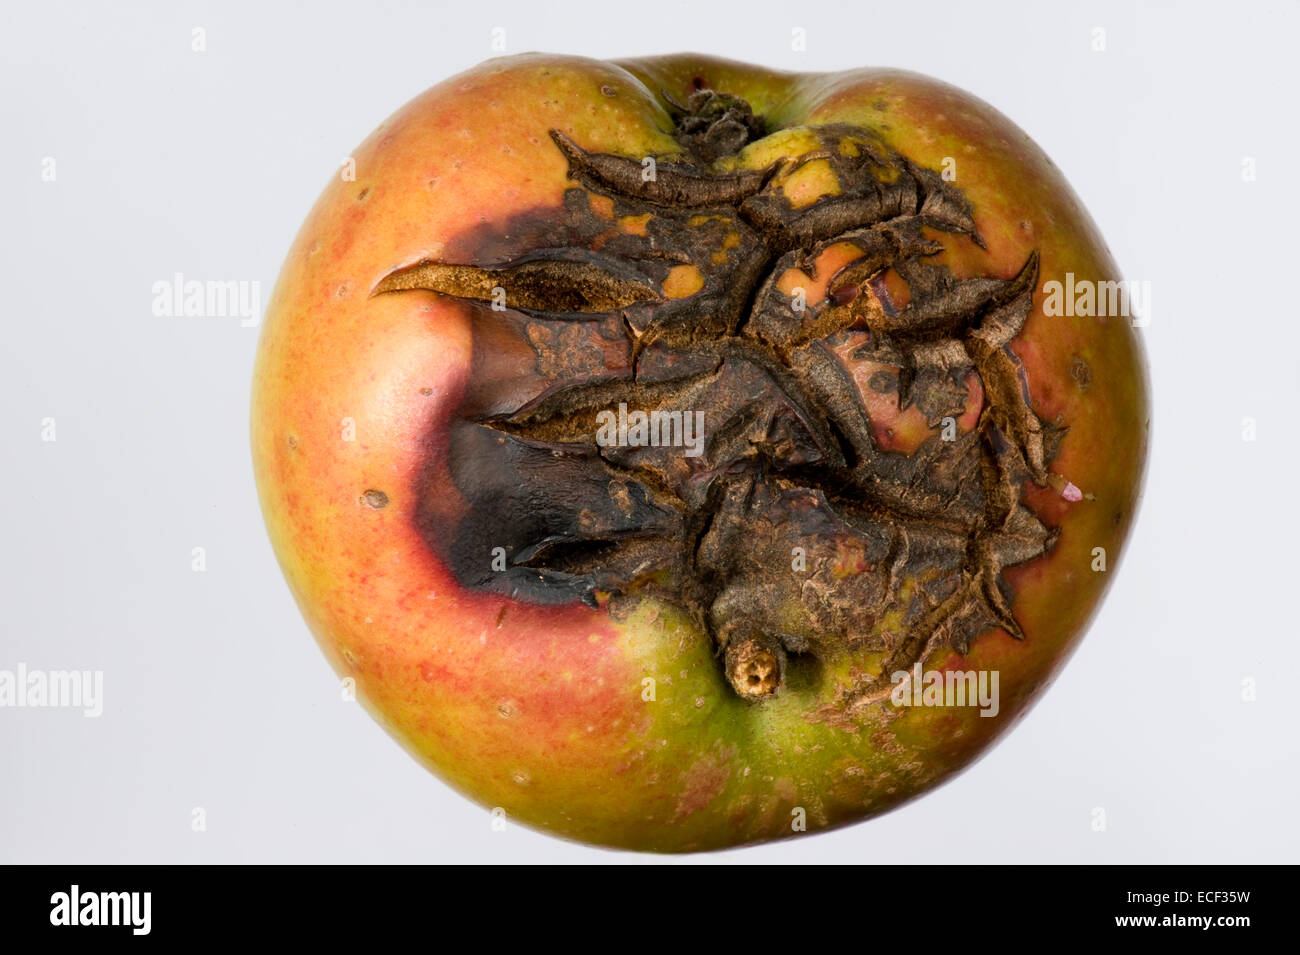 Severe cracking on an apple fruit in dry weather - Stock Image